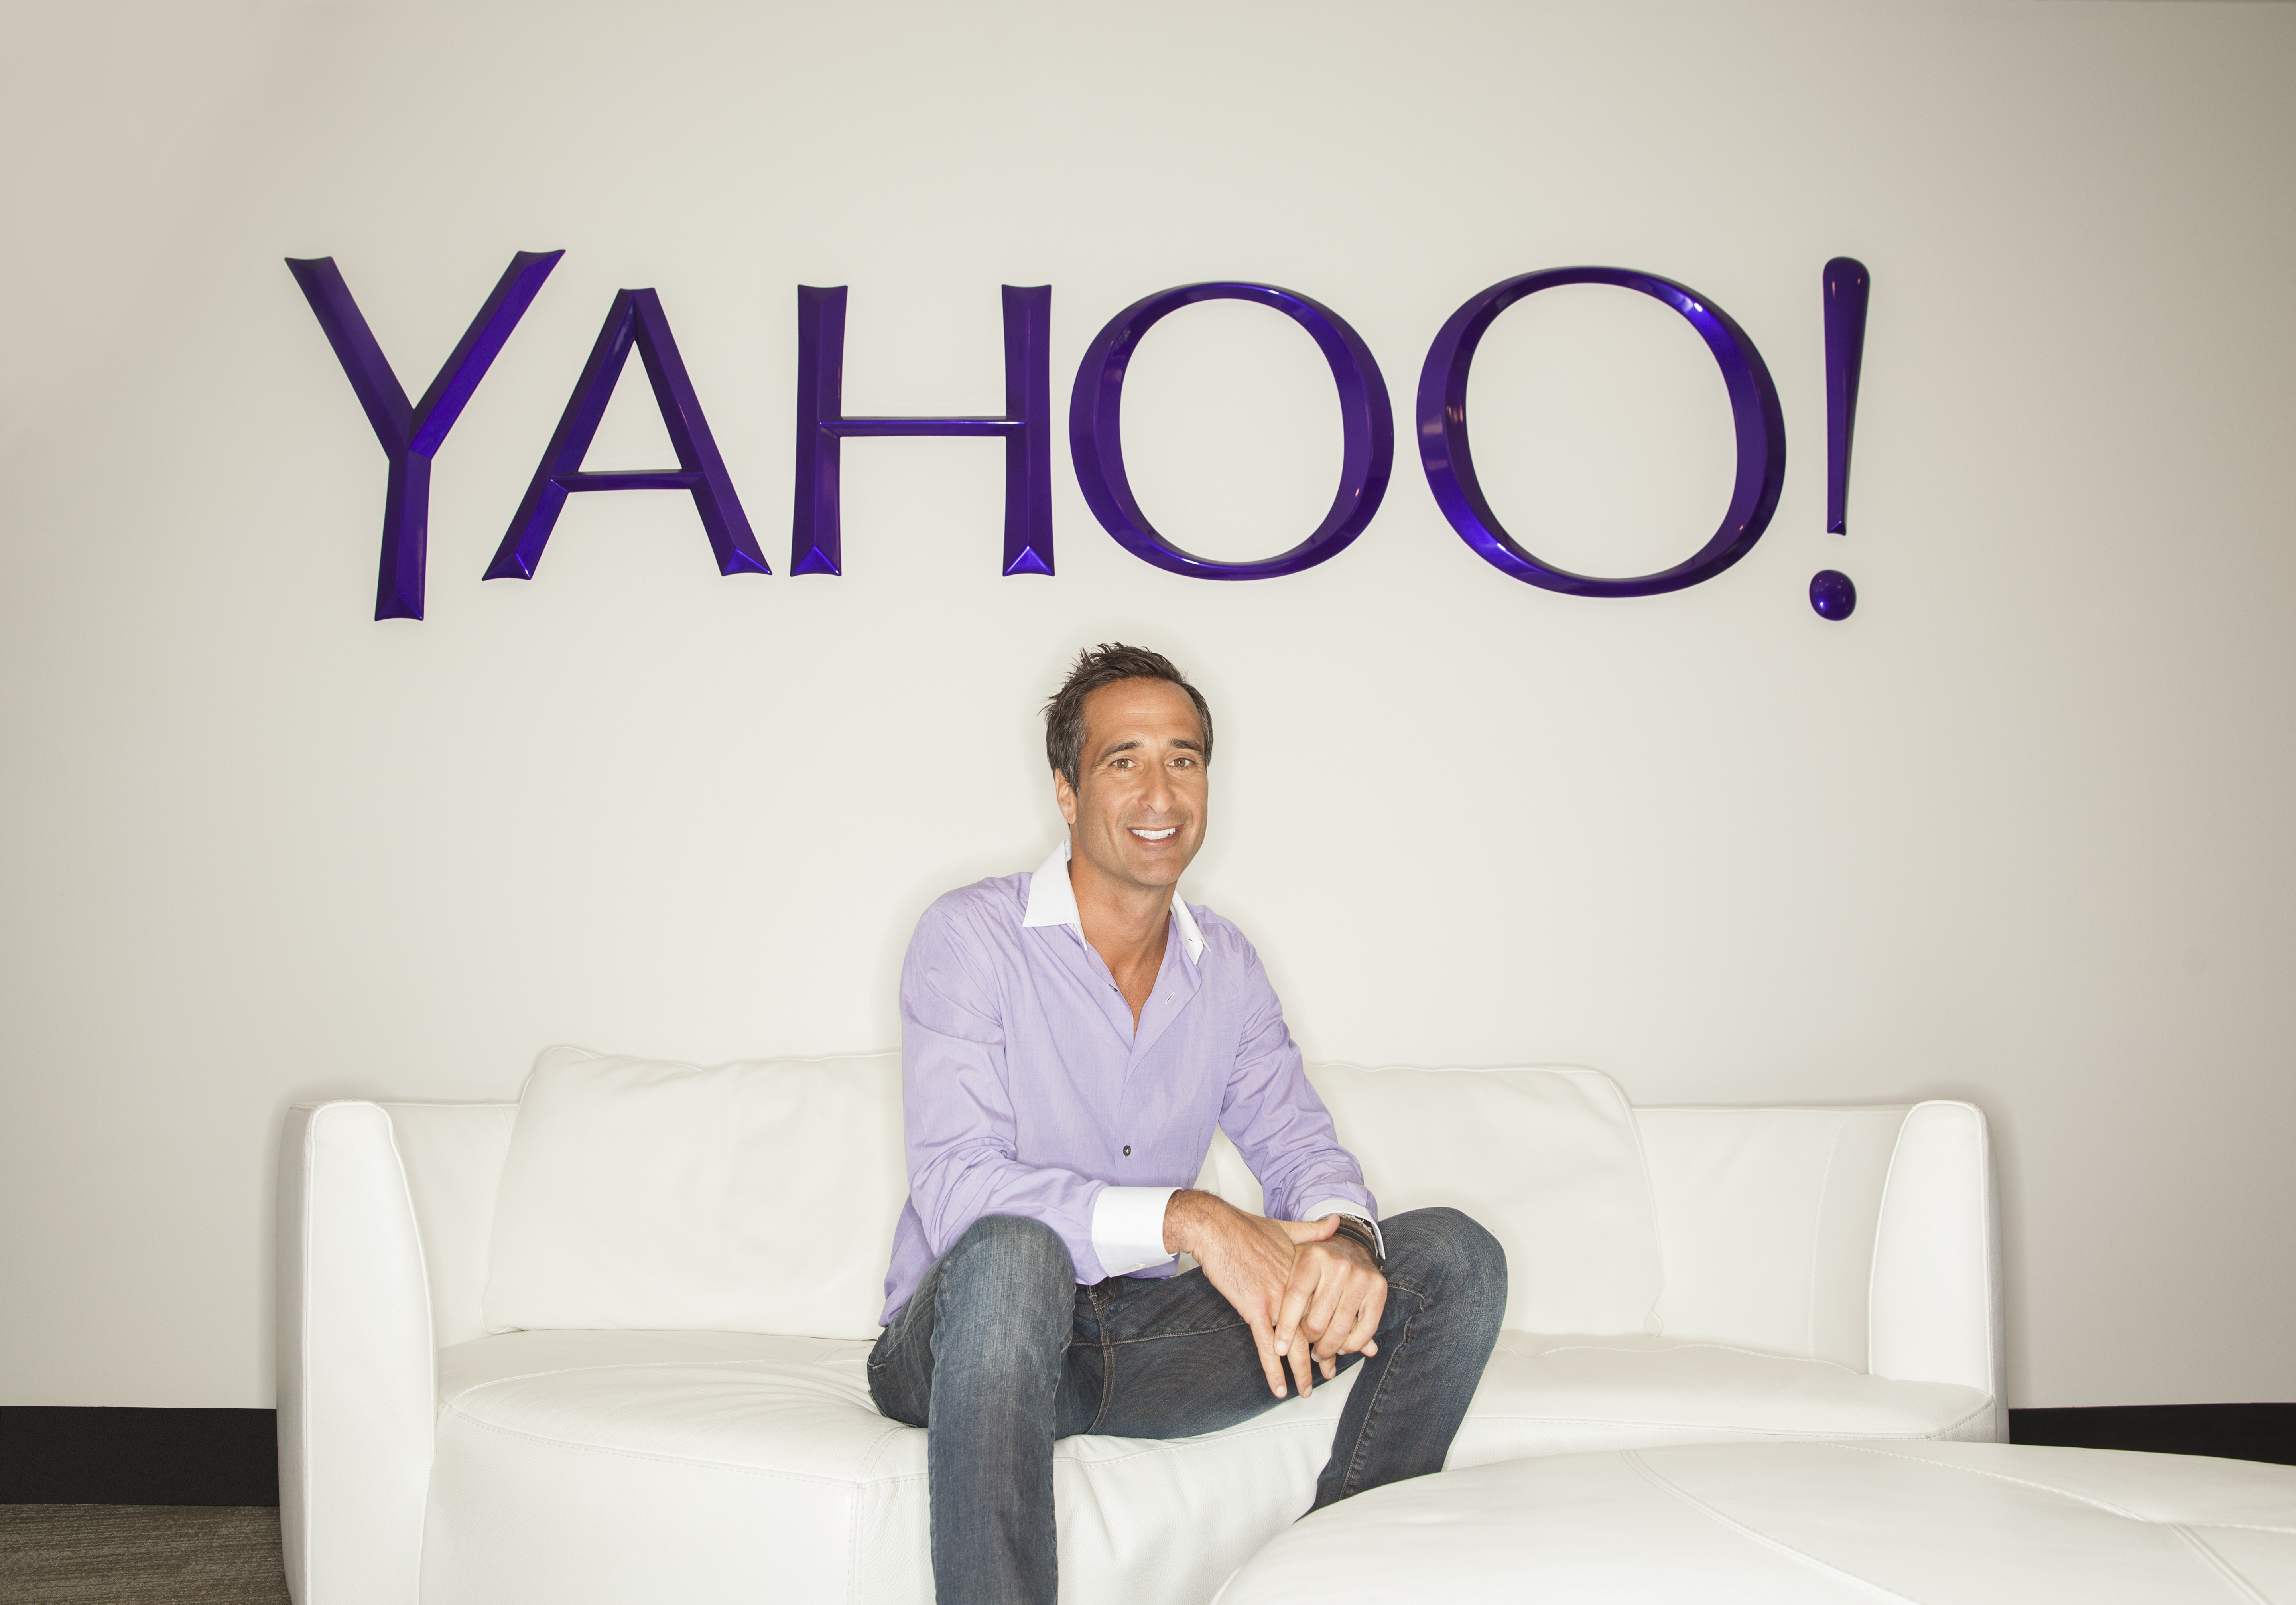 Adam Cahan, SVP of video, design, and emerging offerings at Yahoo